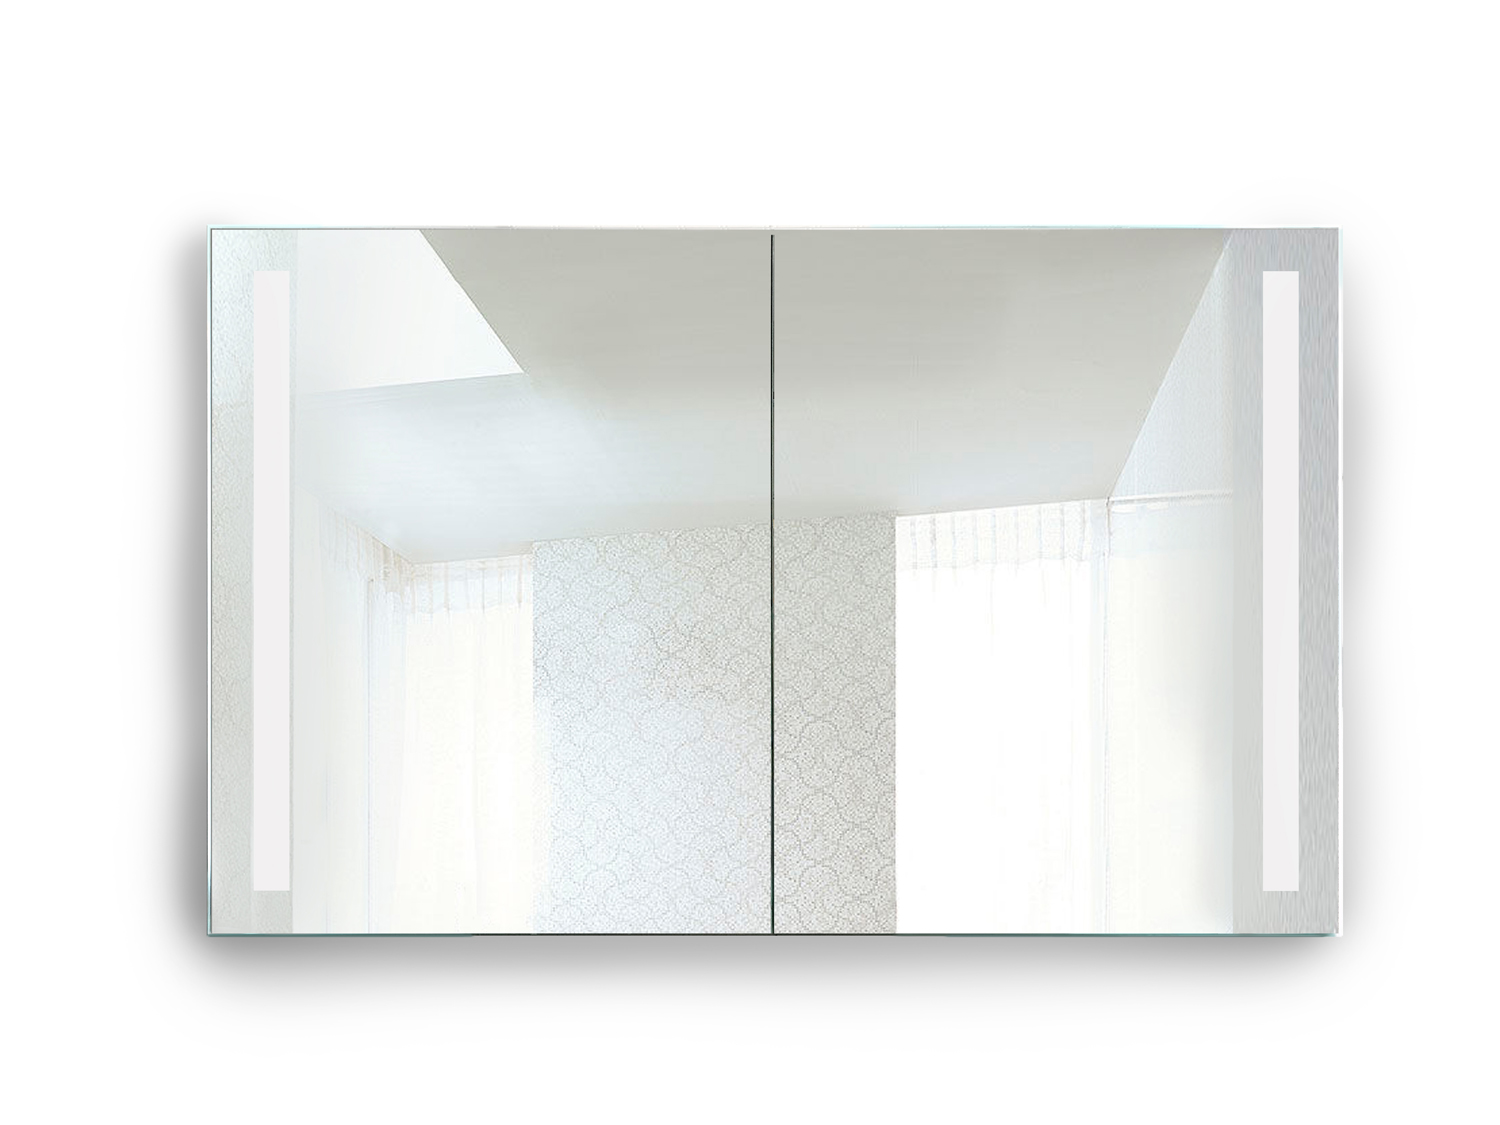 Rolls Sliding Led Medicine Cabinet 48 X 30 W Dimmer Amp Defogger Lighted 2 Sliding Mirror